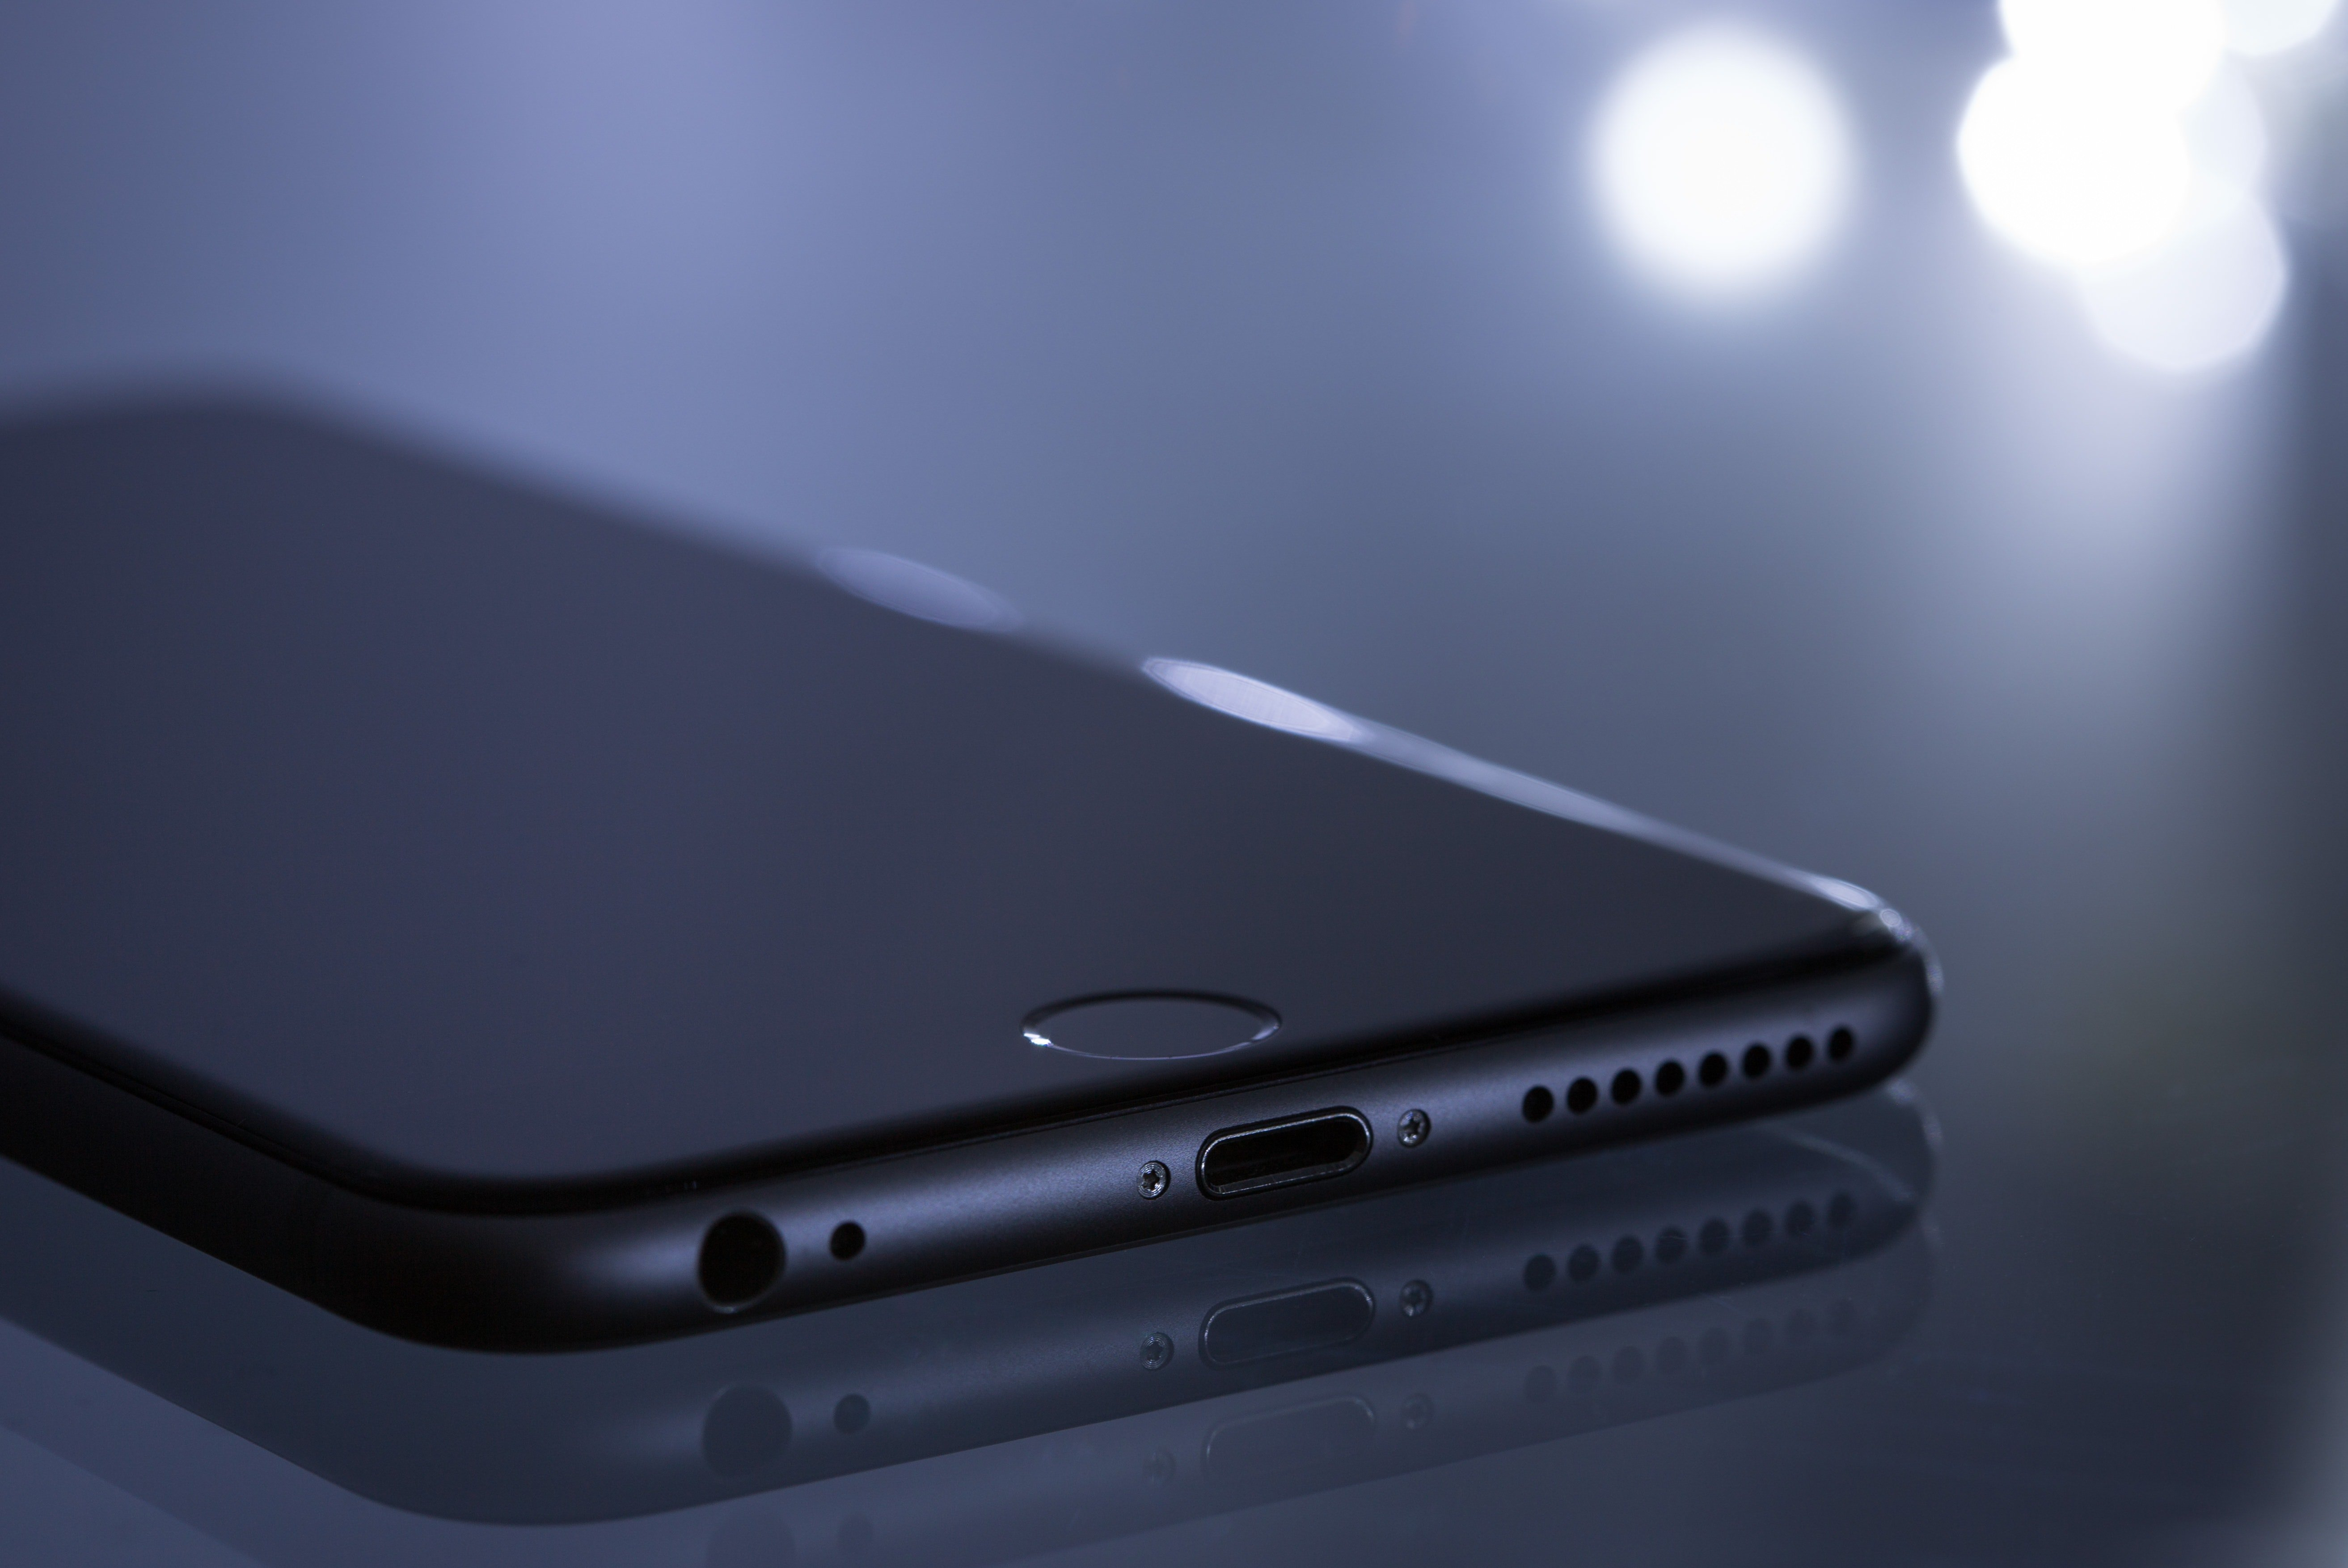 Pictured - A photo of a Space Gray iPhone 6 on the desk | Source: Pexels